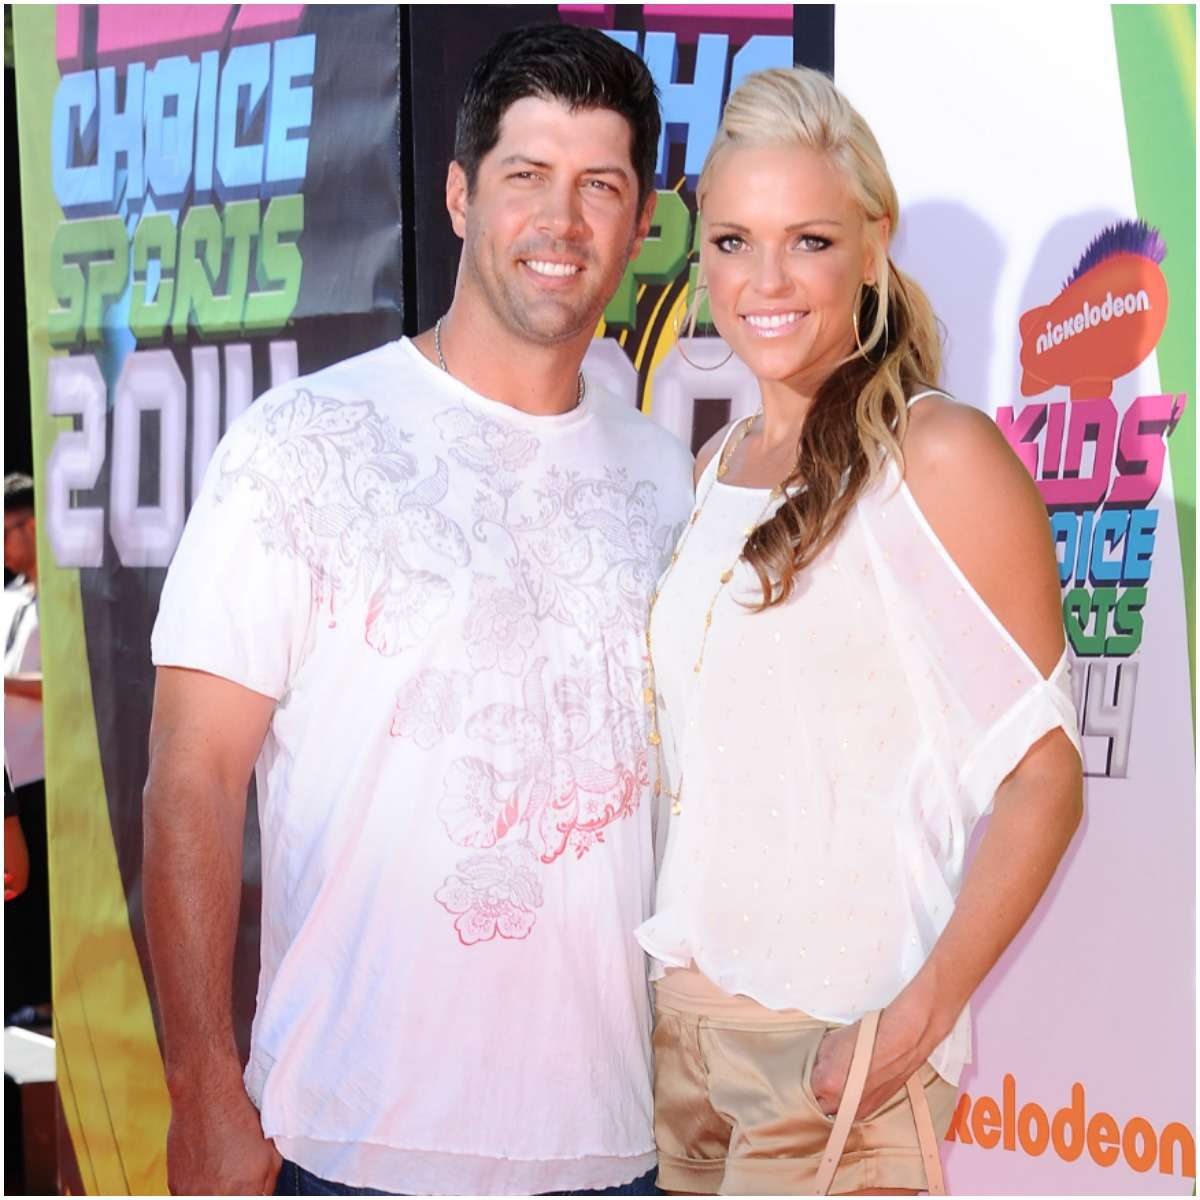 Jennie Finch and her husband Casey Daigle